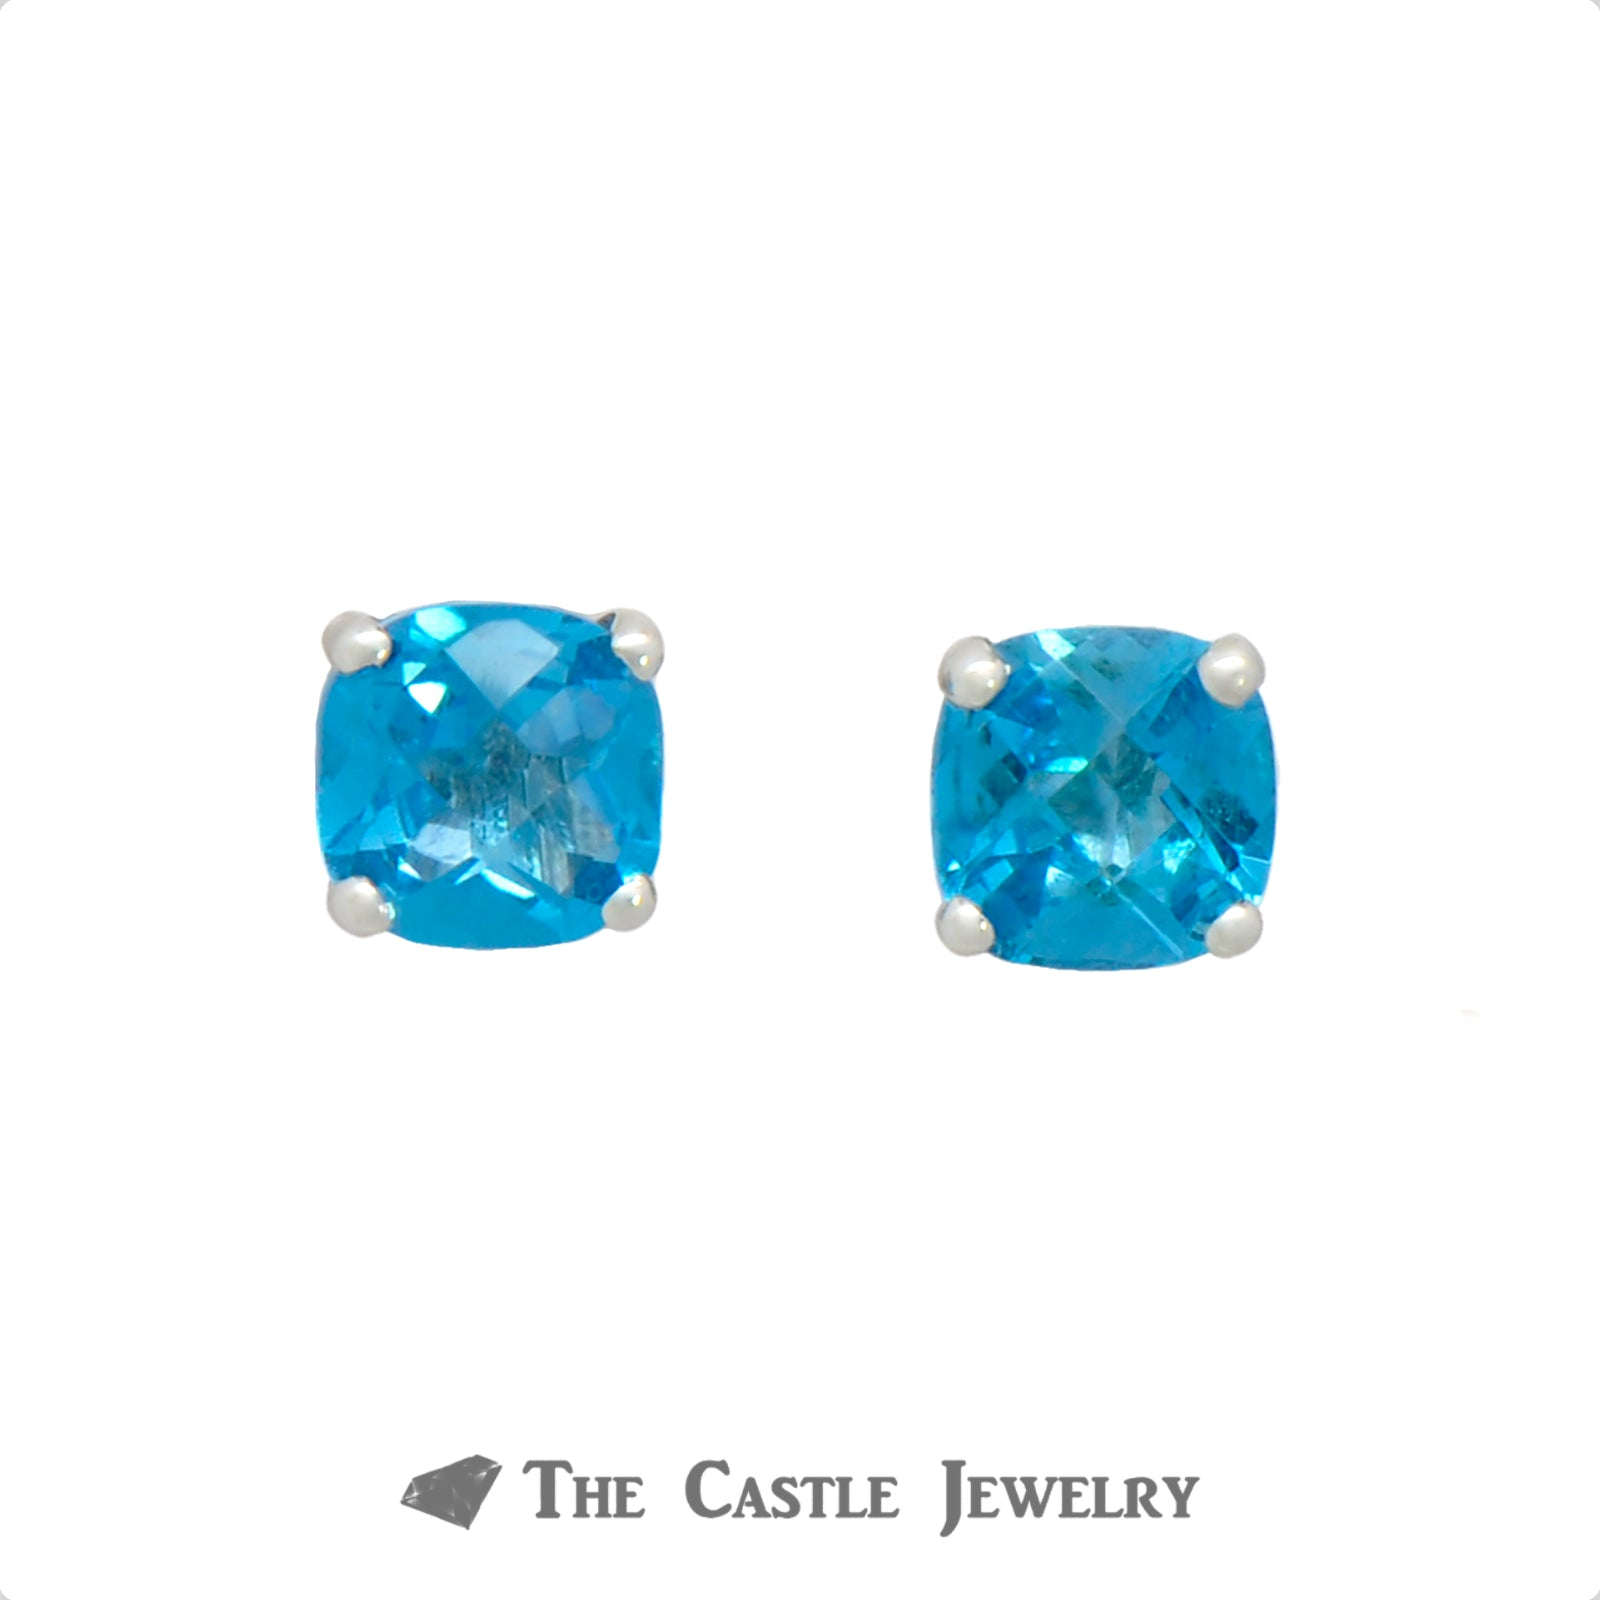 Cushion Cut Blue Topaz Studs in 14k White Gold